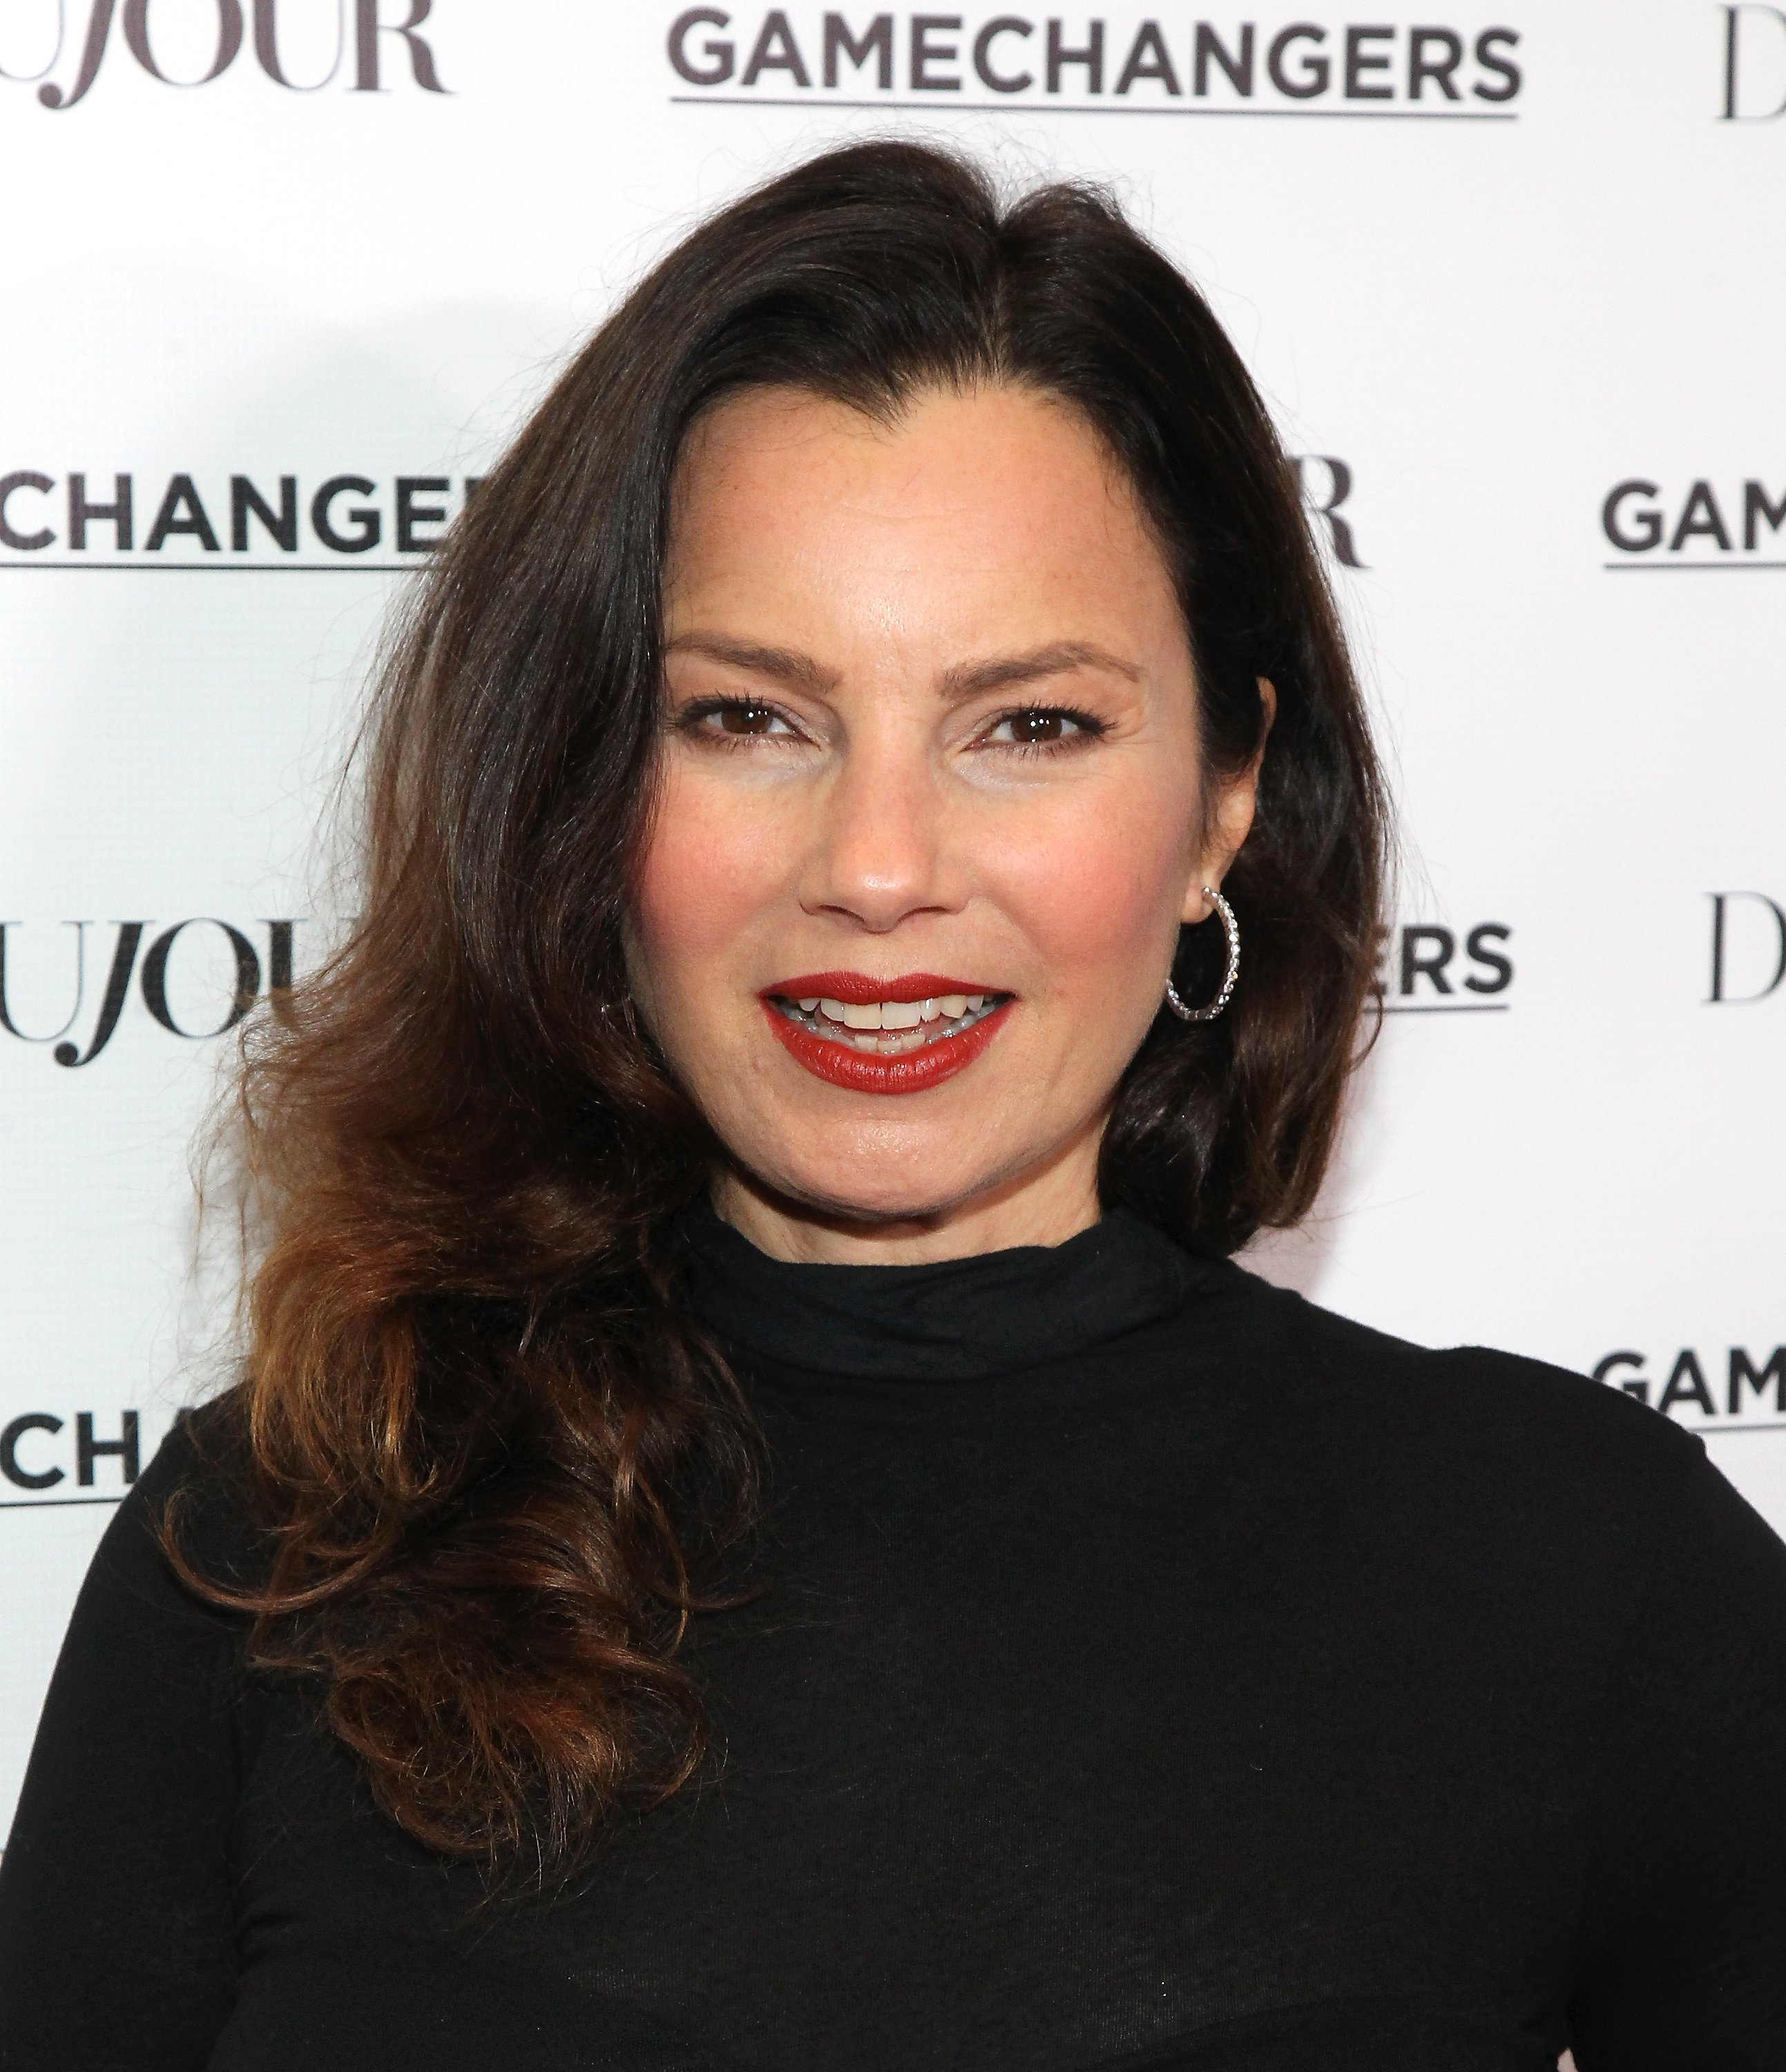 Fran Drescher at DuJour Magazine's Special Gamechangers issue on October 28, 2015 | Photo: GettyImages